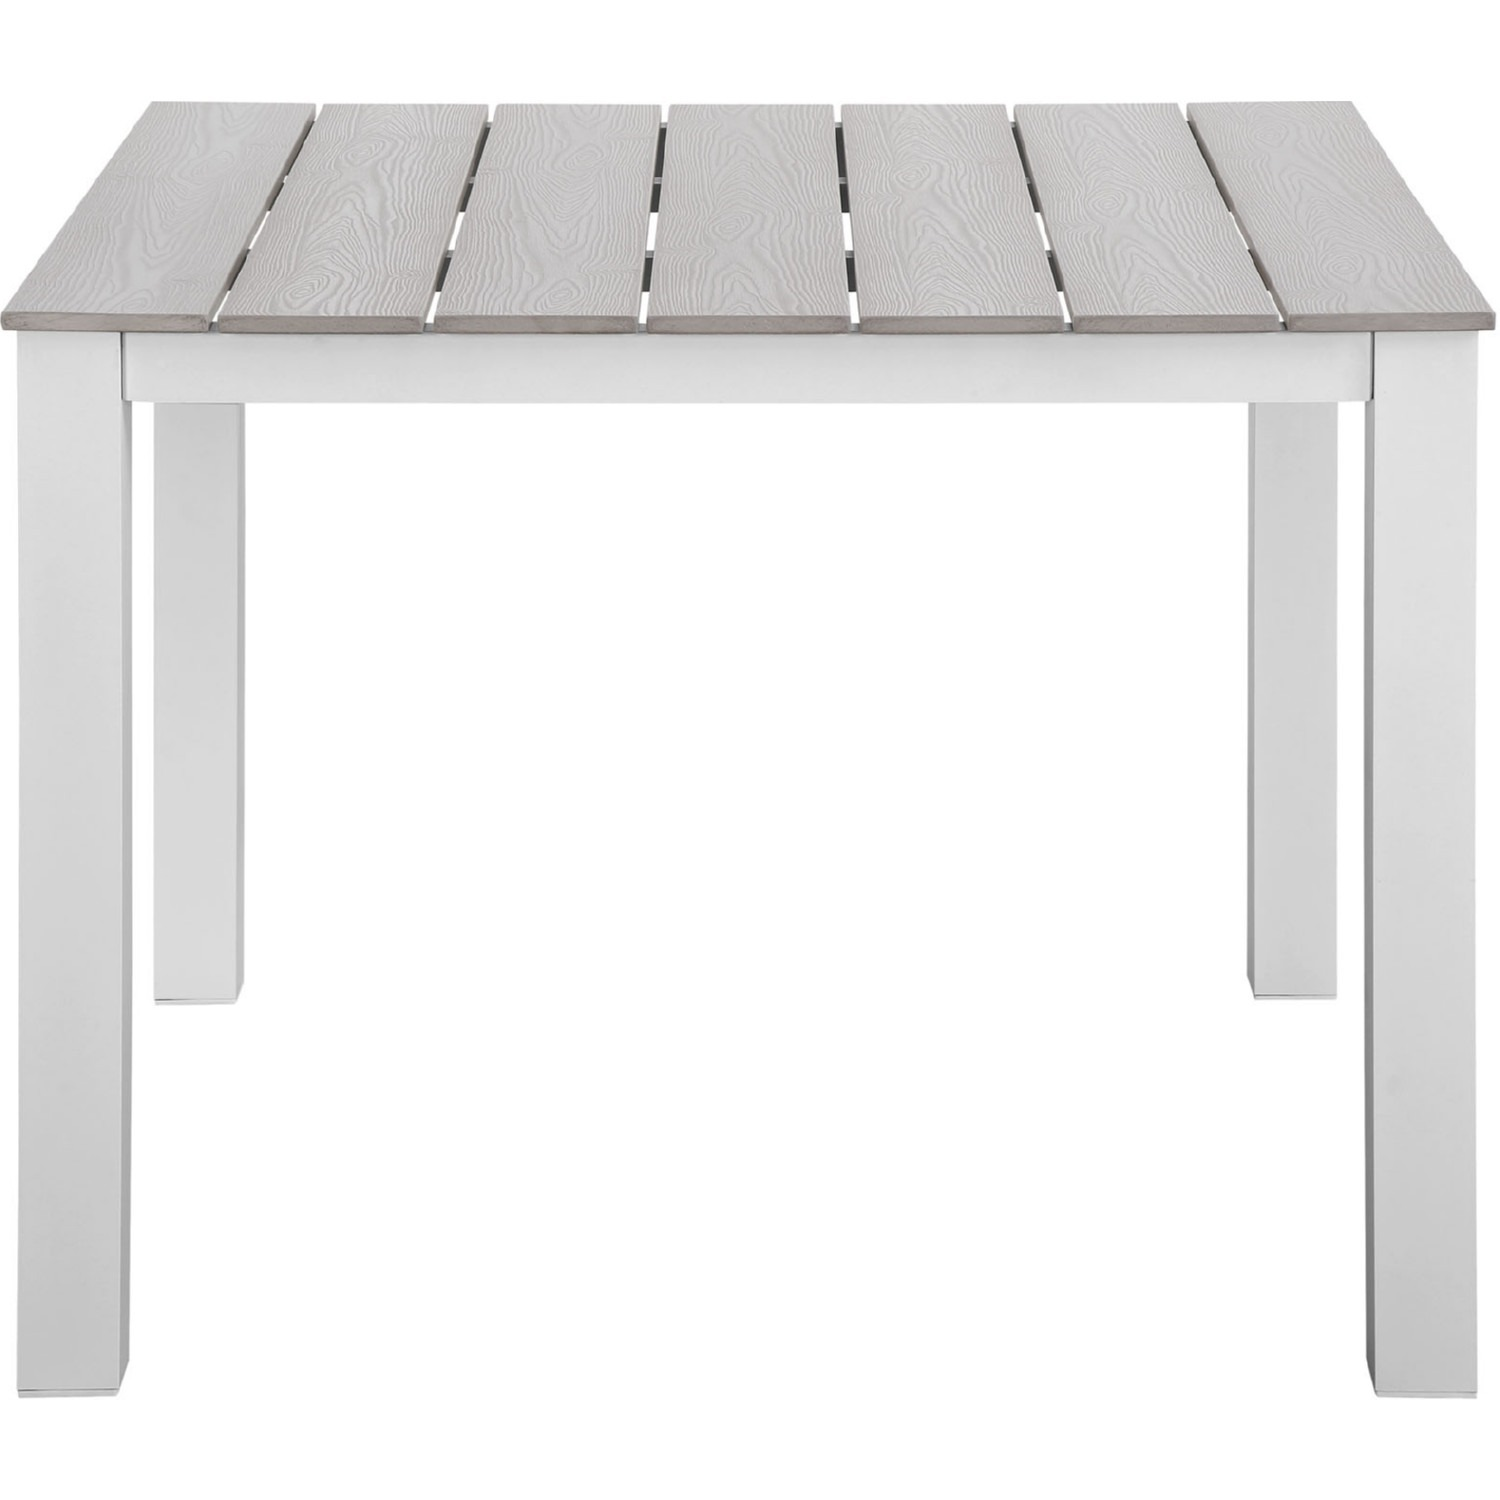 Modern 3-Piece Dining Set In White & Gray - image-5